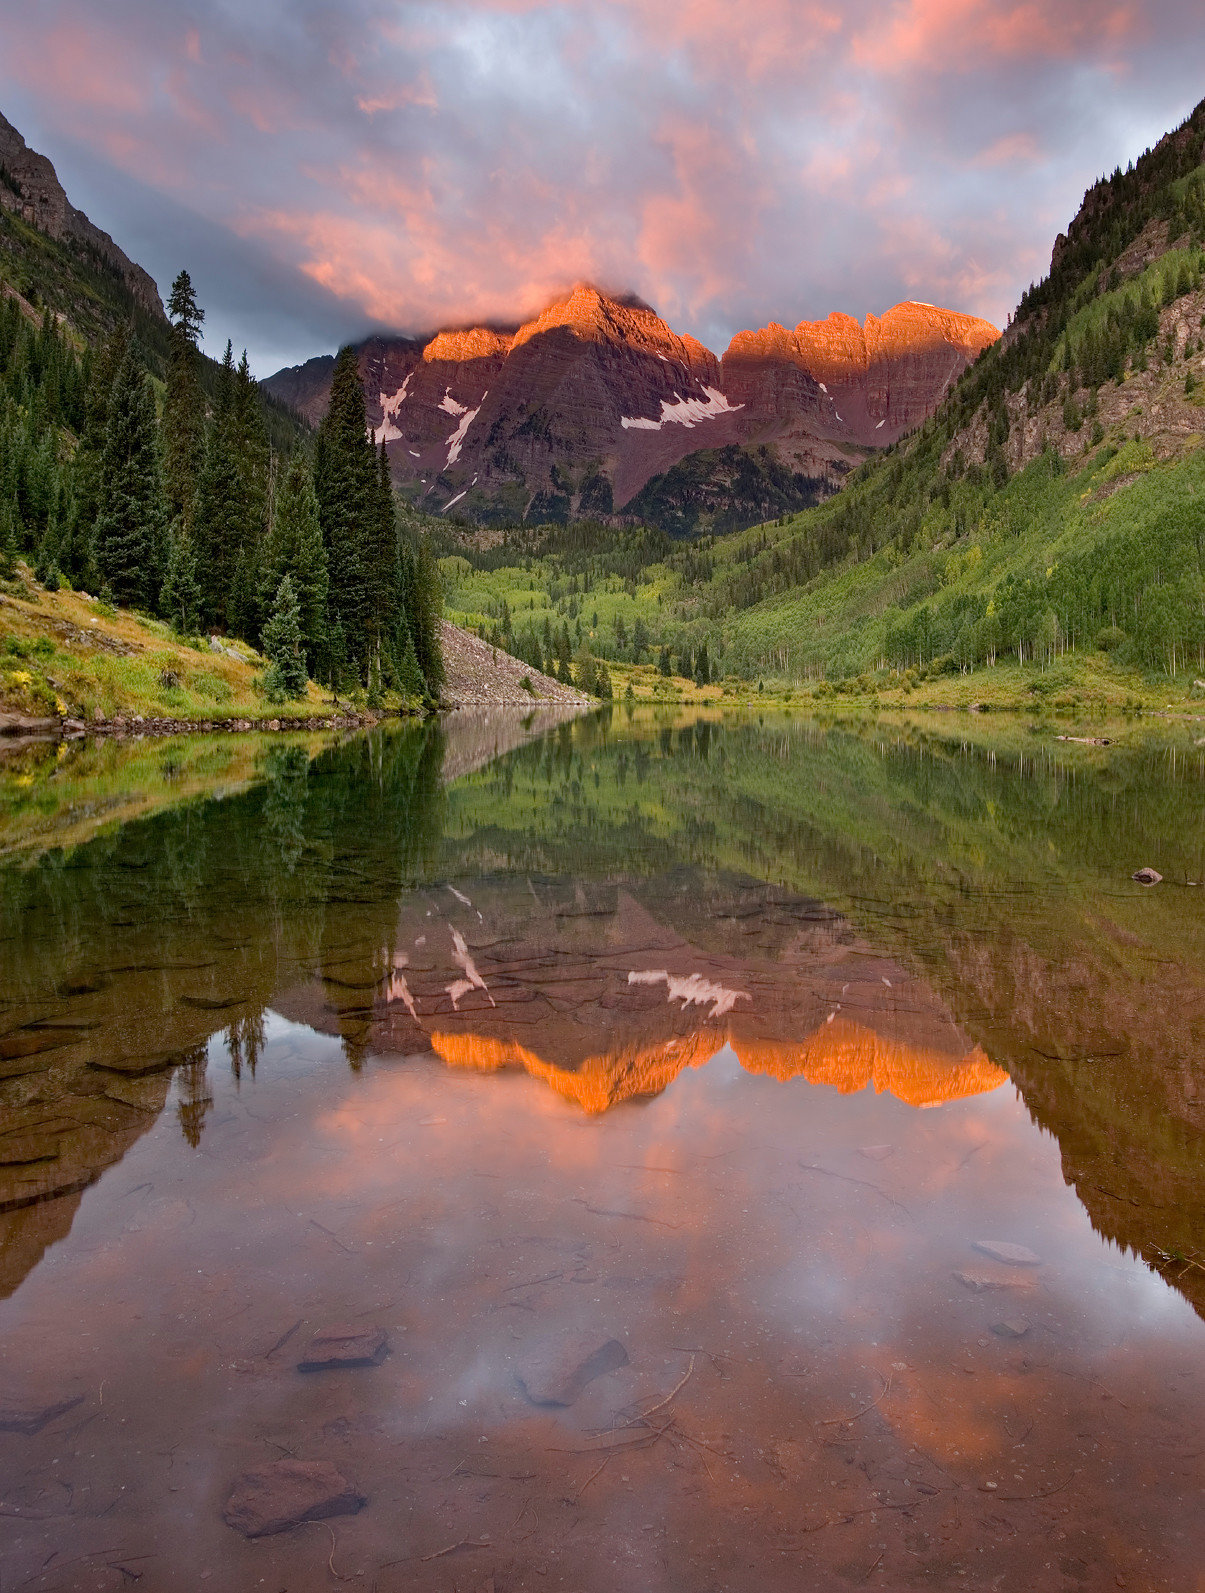 Lake Mountains Nature Outdoors Scenic views mountainous landforms valley mountain River wilderness water canyon loch orange tarn cloud morning landscape autumn leaf Sunset sunrise stream reservoir mountain range setting dawn